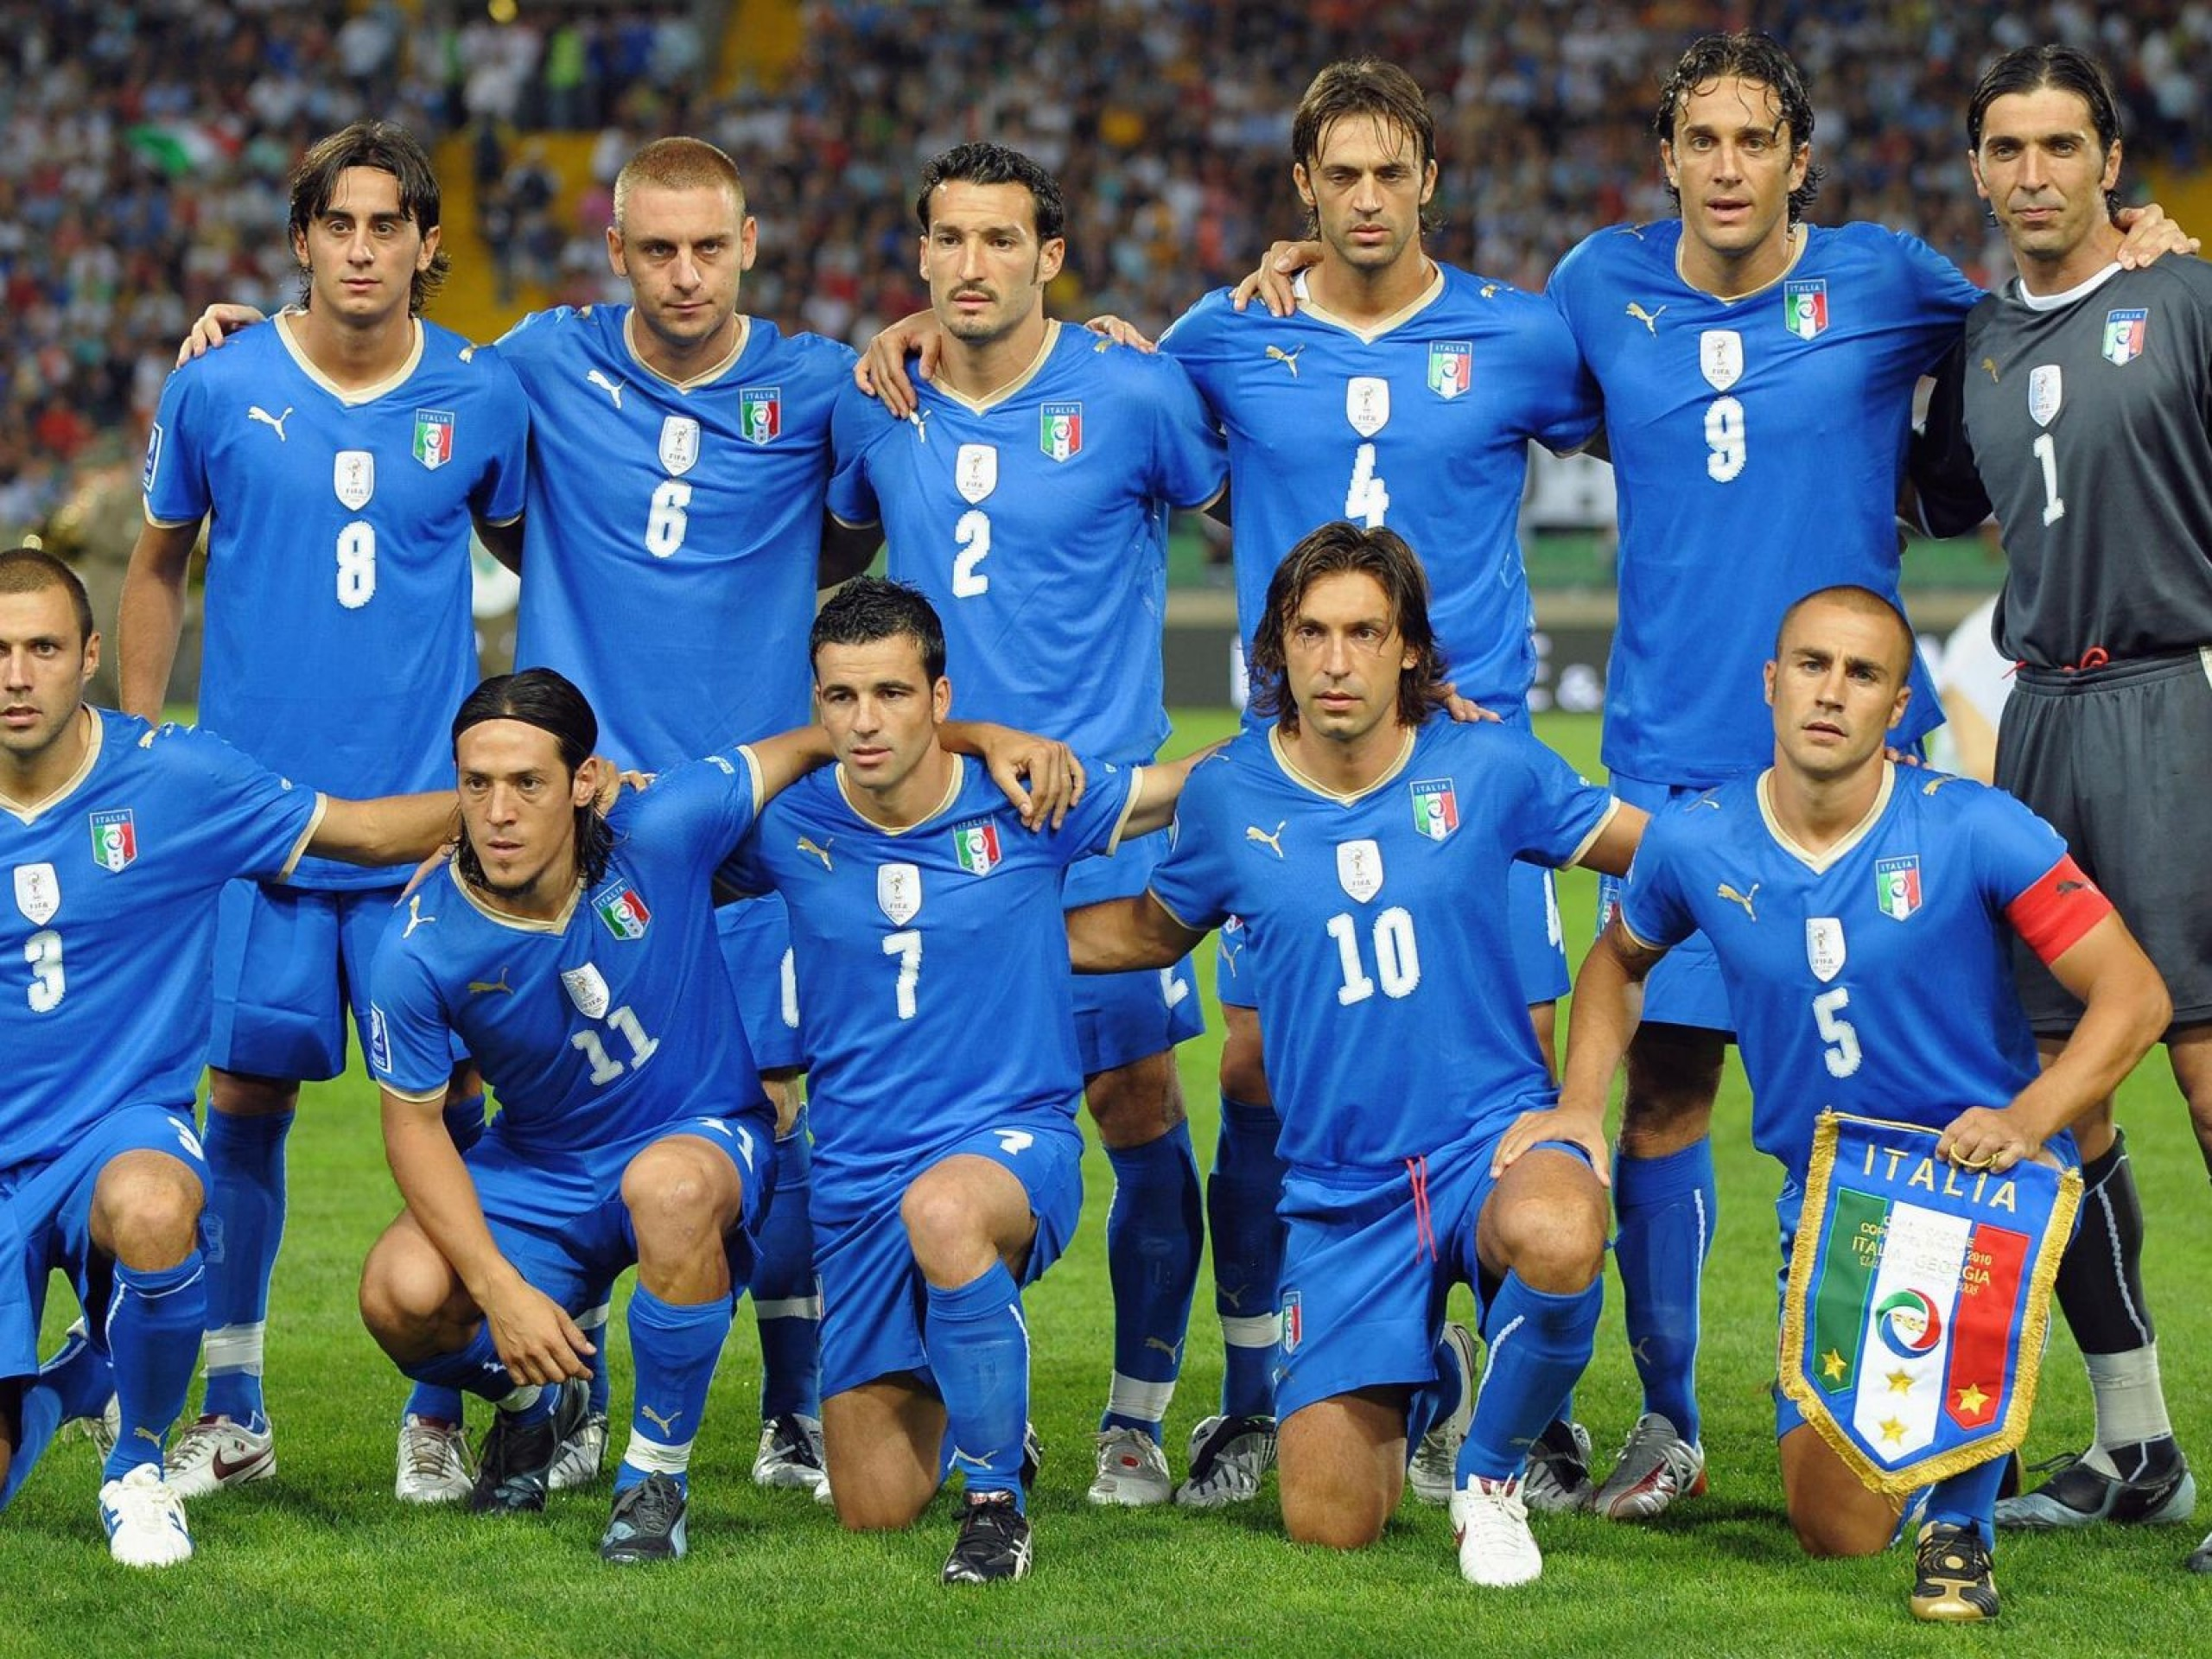 sports shoes 2c0d9 5d0c4 25 Italy Football World Cup National Team Blue Jersey Hd ...